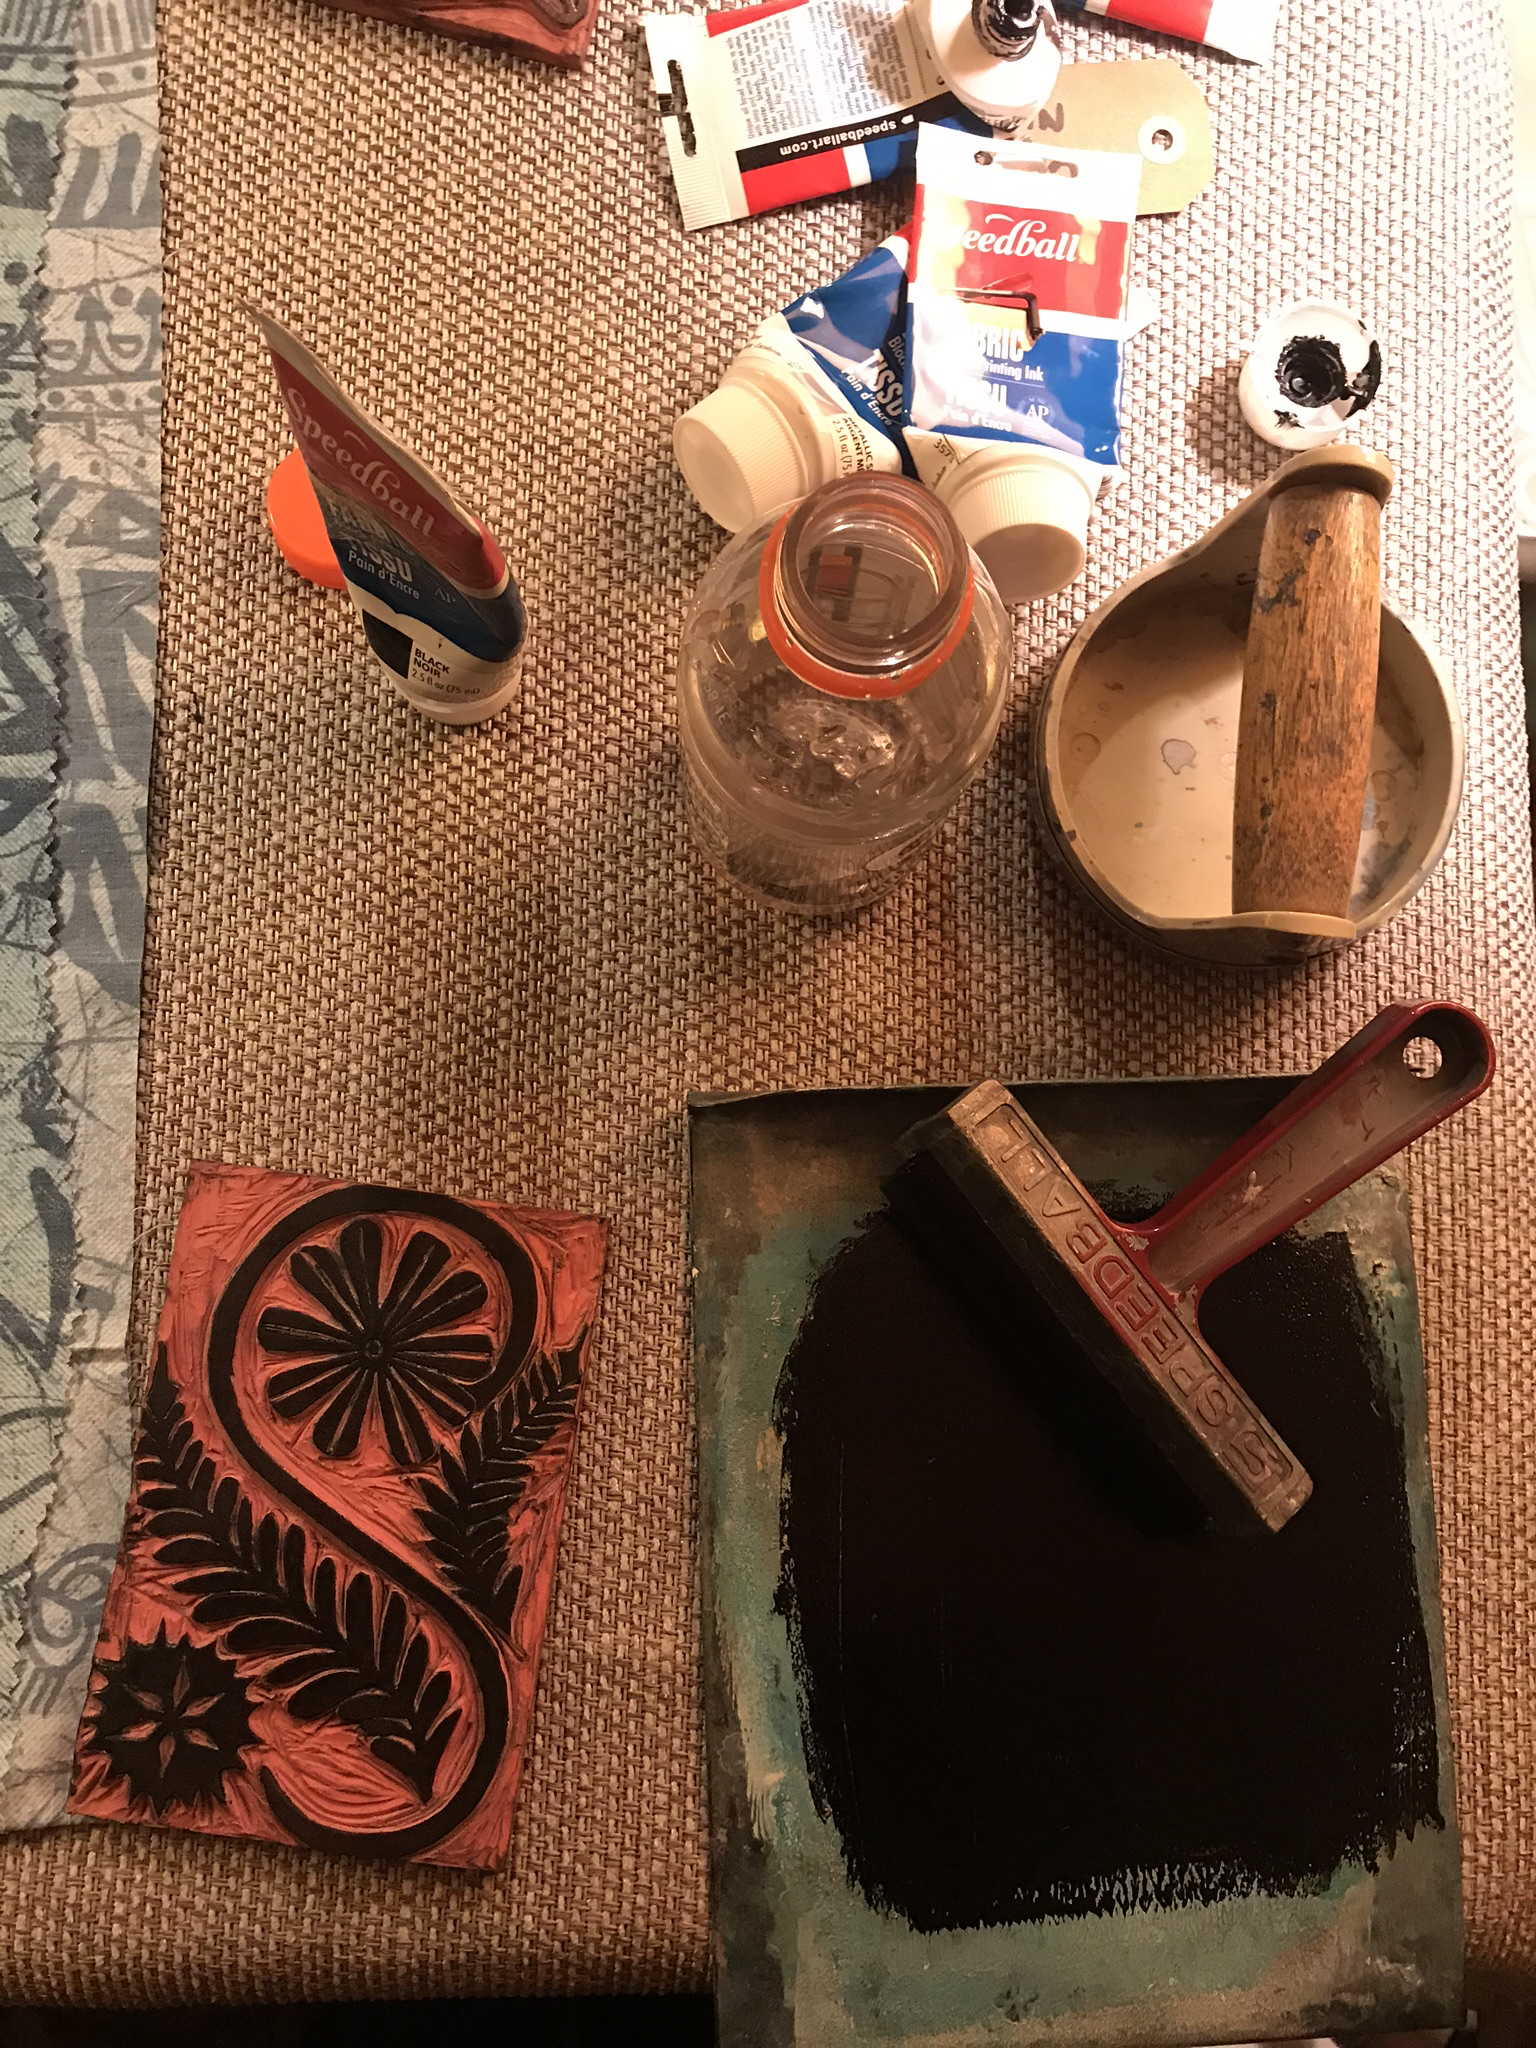 Ink That Up - So you can see all my tools and supplies here-I've got my baren for printing, my ink plate, speedball fabric ink tubes, my roller, and my cut unmounted lino block. I like to keep a bottle on water handy in case things dry up